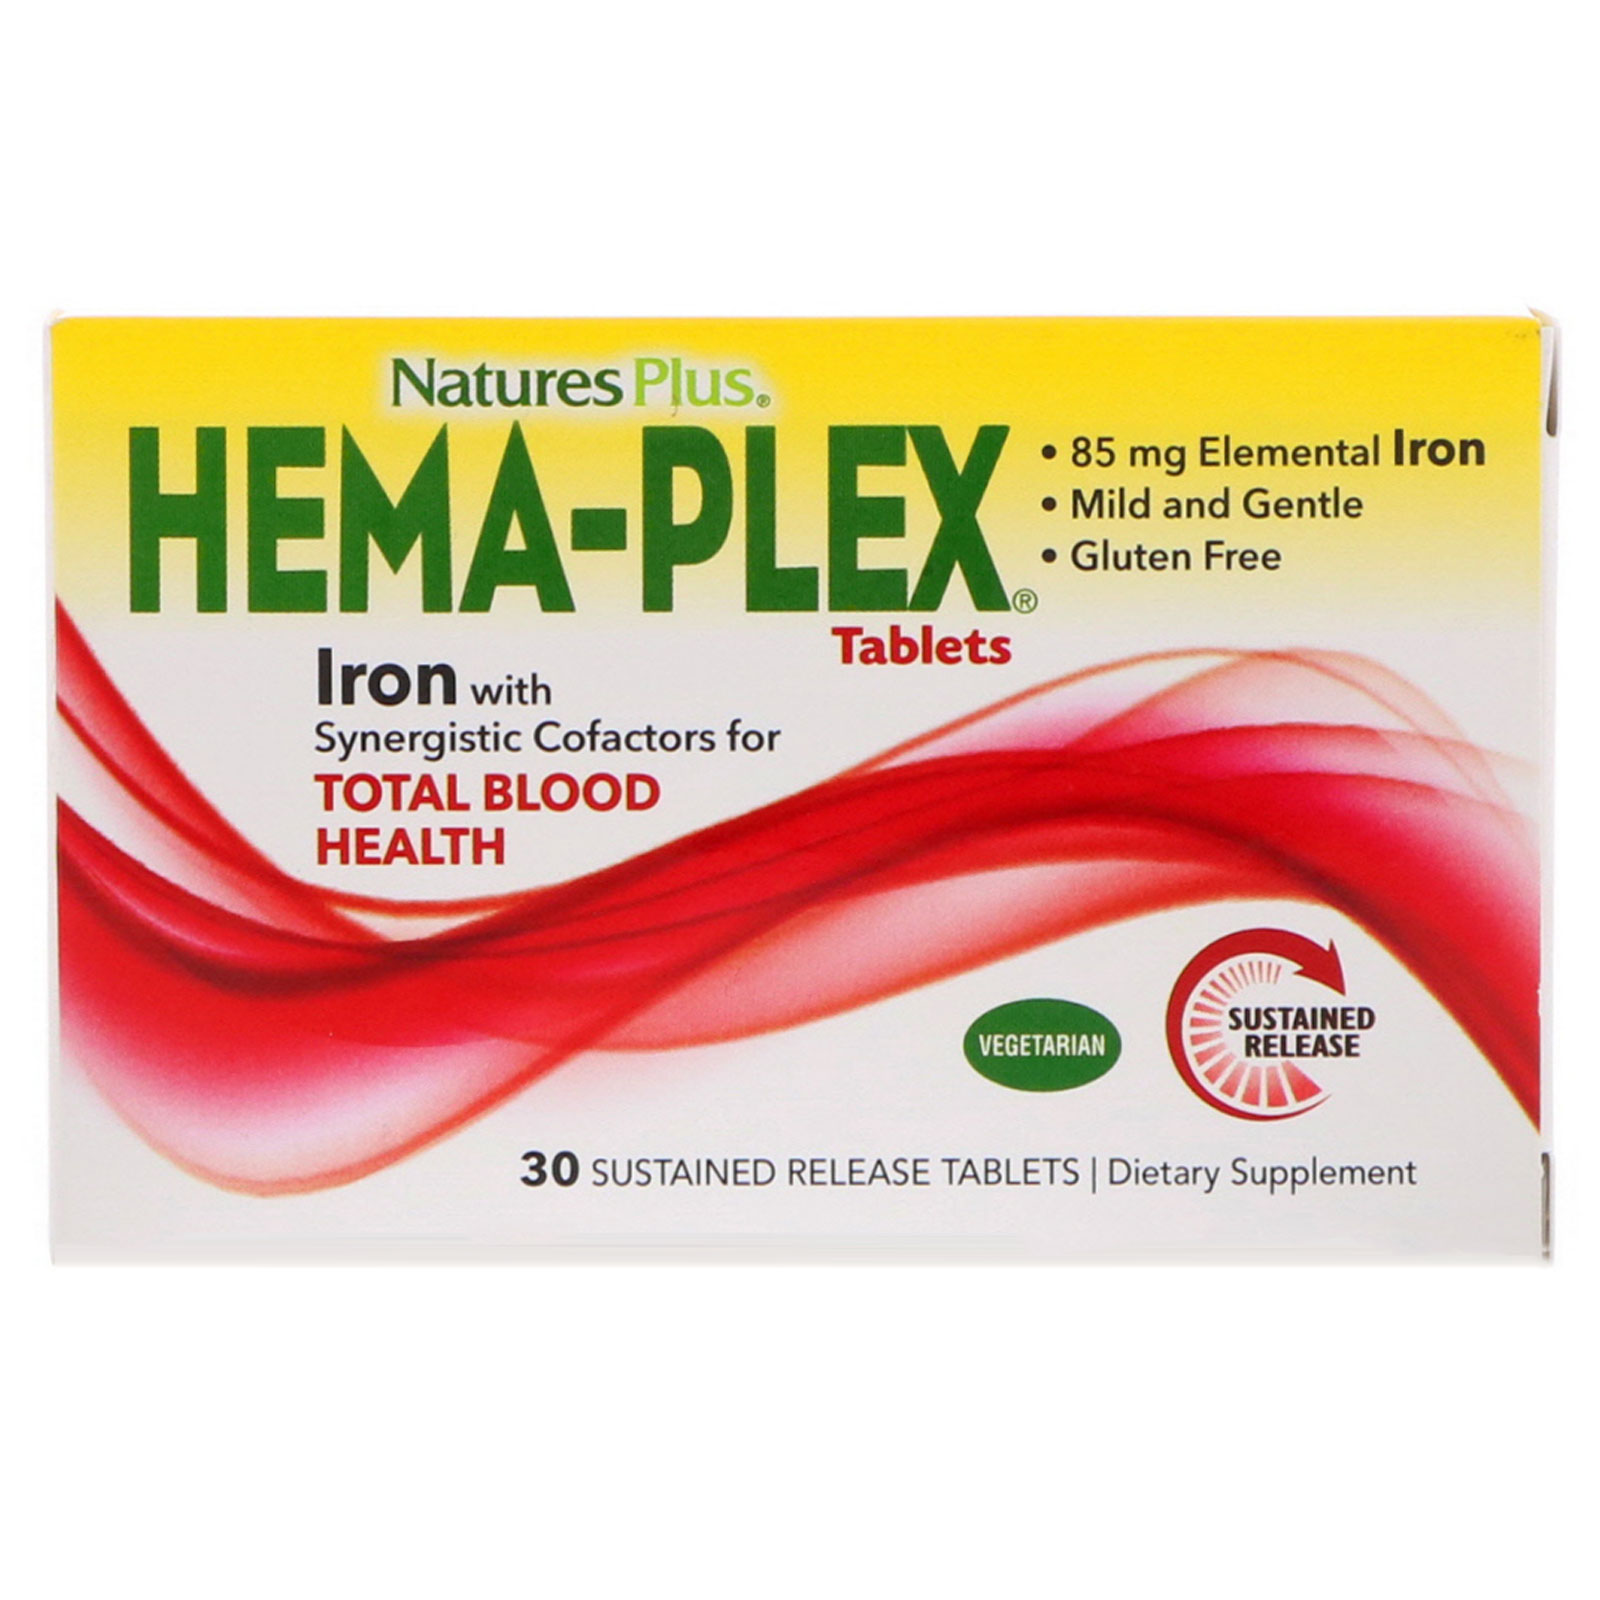 Nature's Plus, Hema-Plex, 30 Sustained Release Tablets - iHerb com